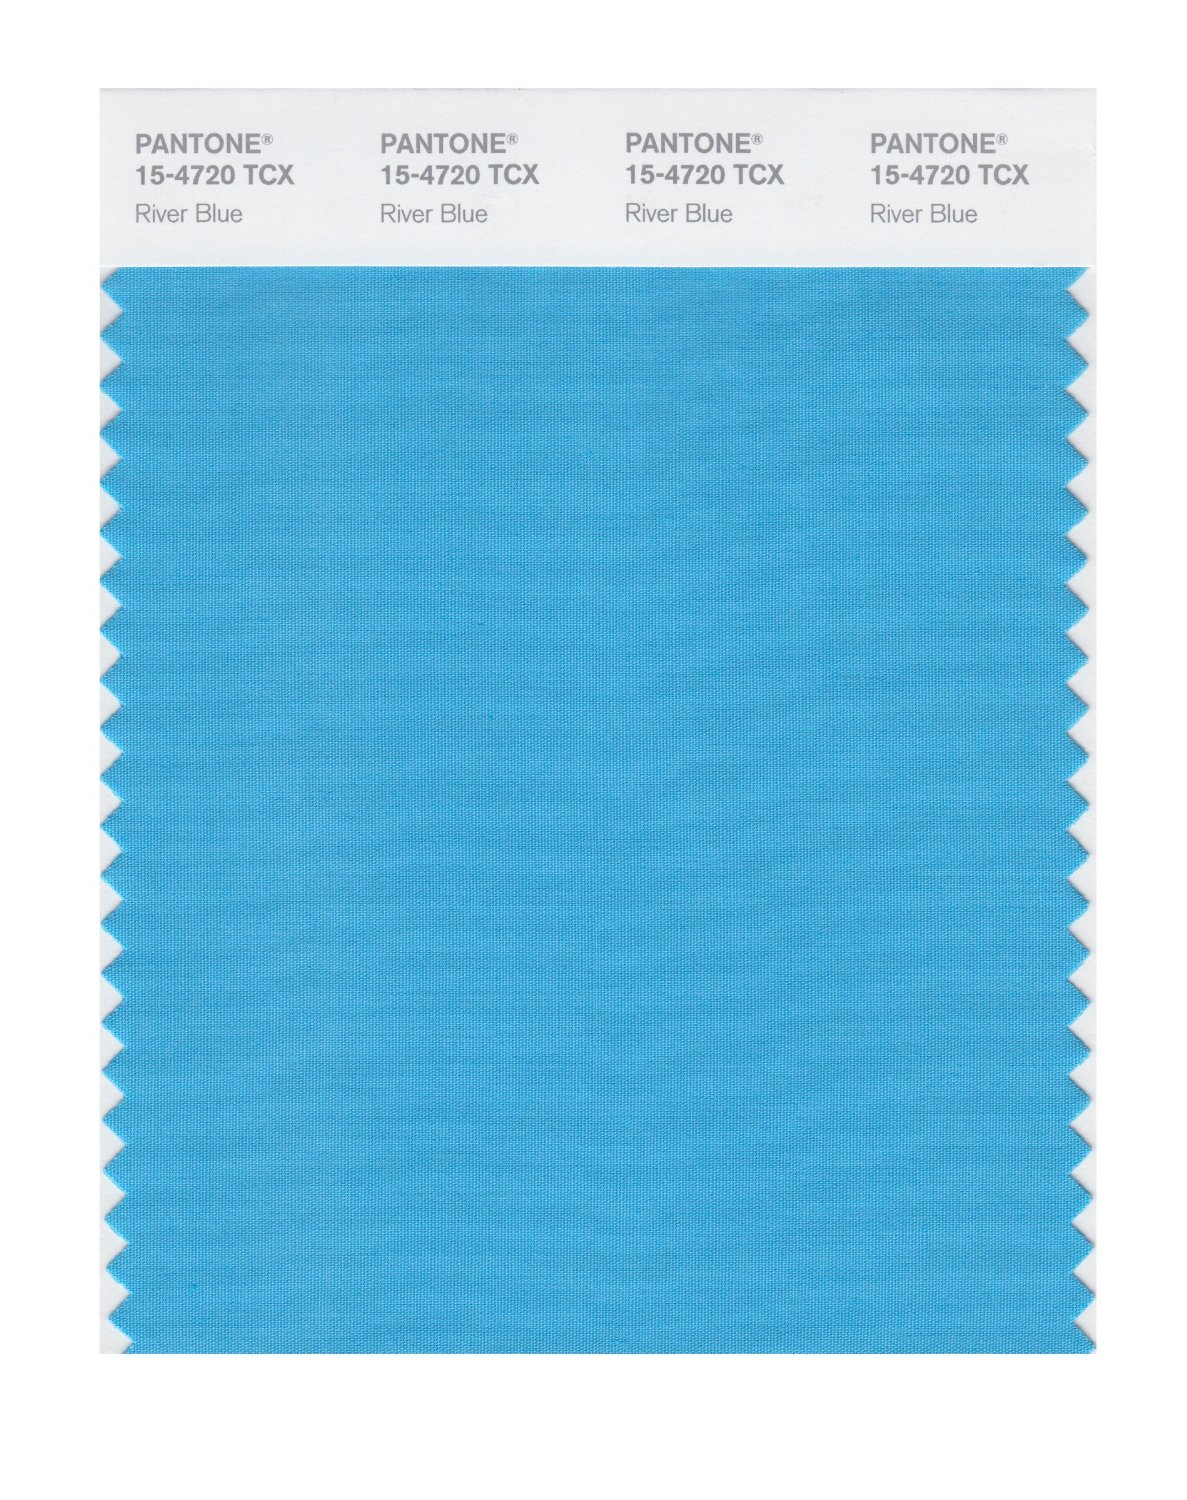 Pantone Smart Swatch 15-4720 River Blue